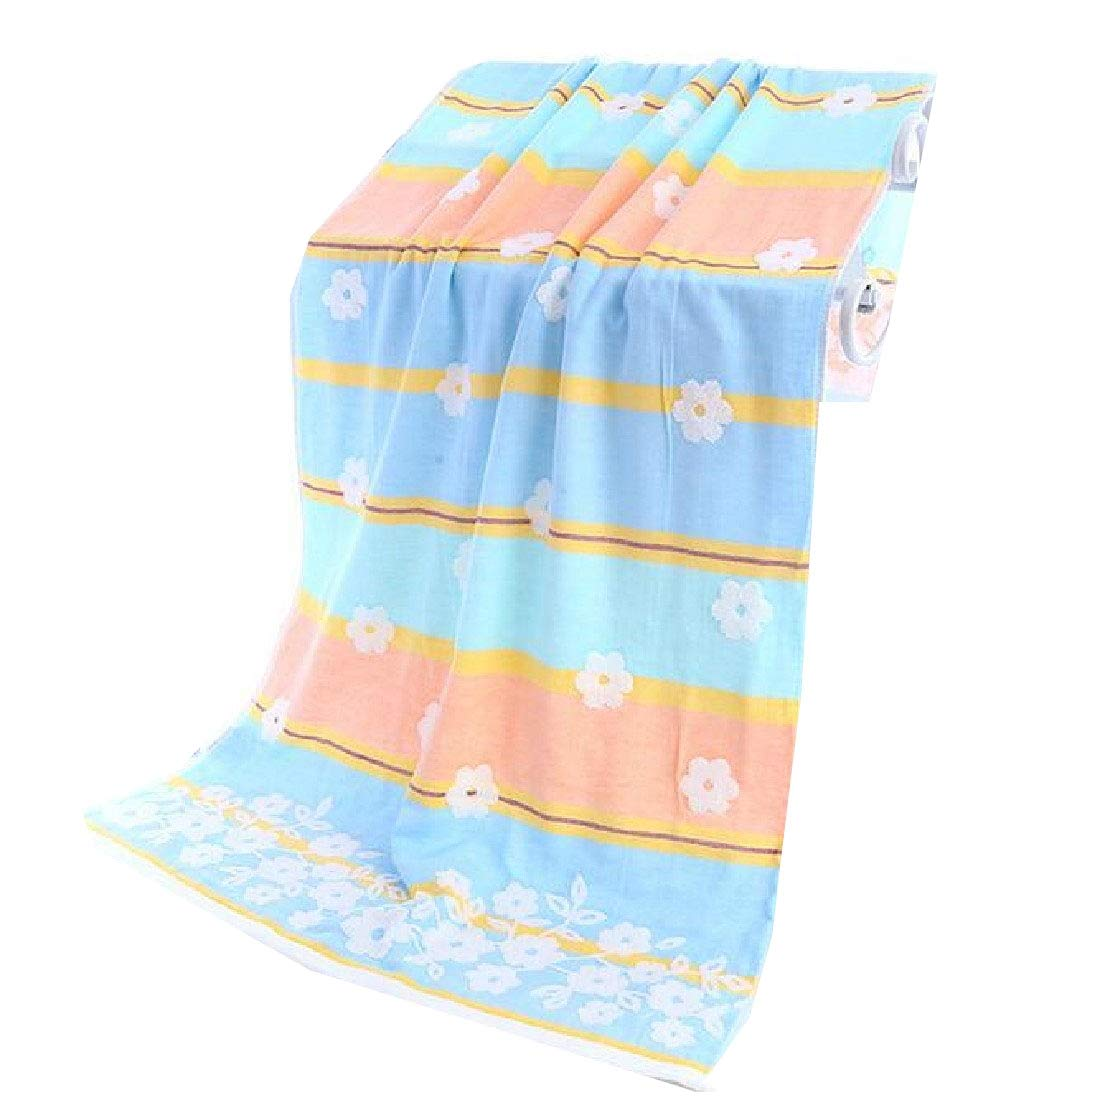 Mfasica Soft Eco-Friendly Ideal for Everyday use Floral Print Towels Antibacterial Bath Sheet Blue 70140cm